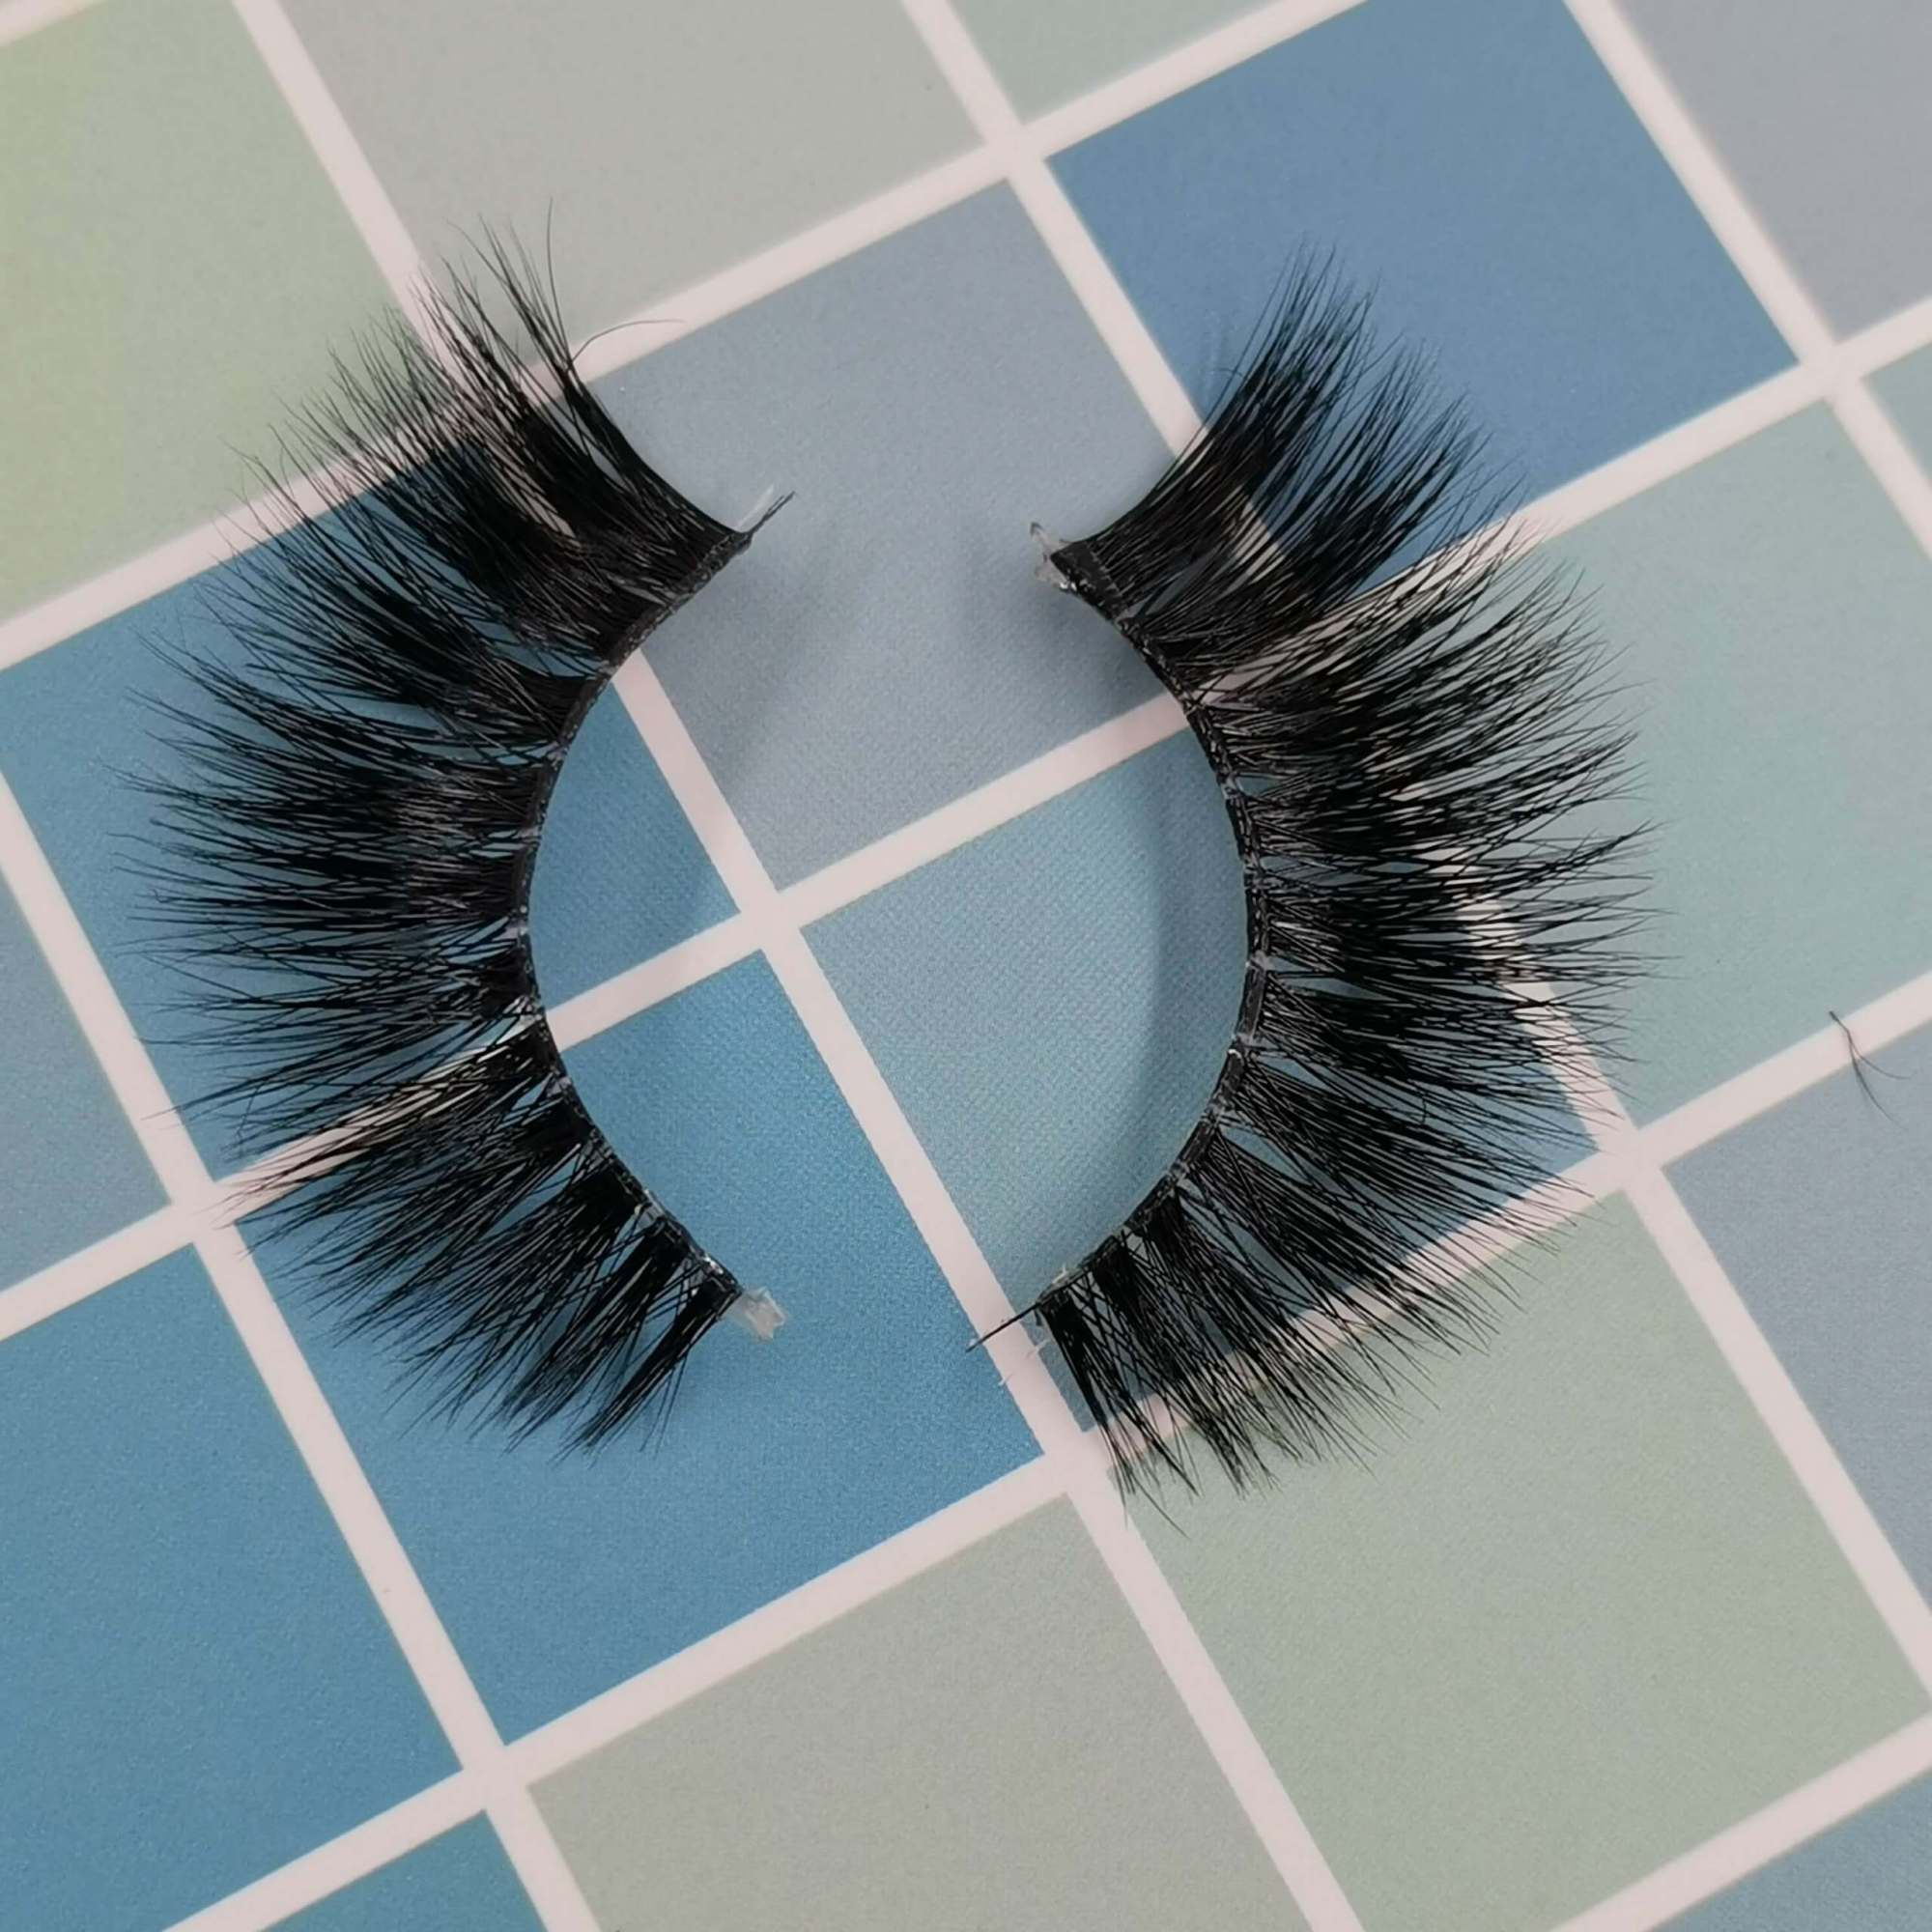 A pair of mink eyelashes for your eye shape and its model is 3T50A. Trust me, ProluxuryLashes brand is the best eyelash supplier